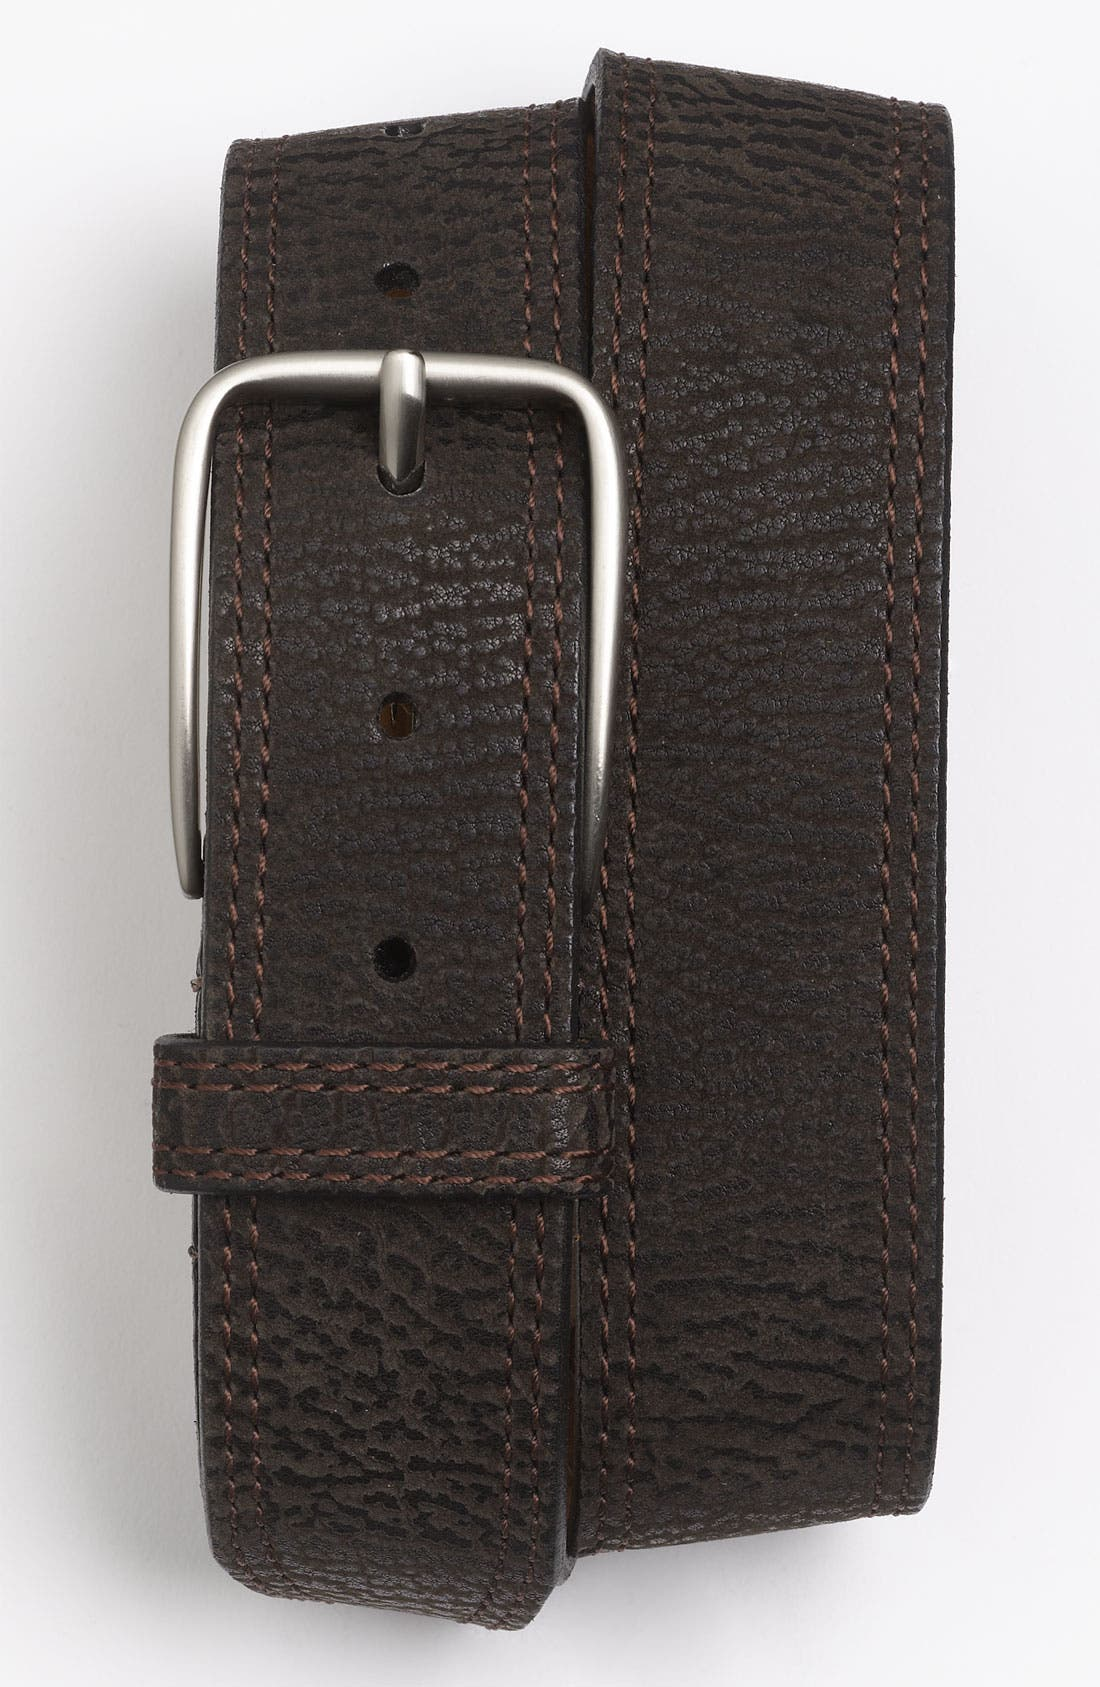 Main Image - Remo Tulliani 'Scafa' Leather Belt